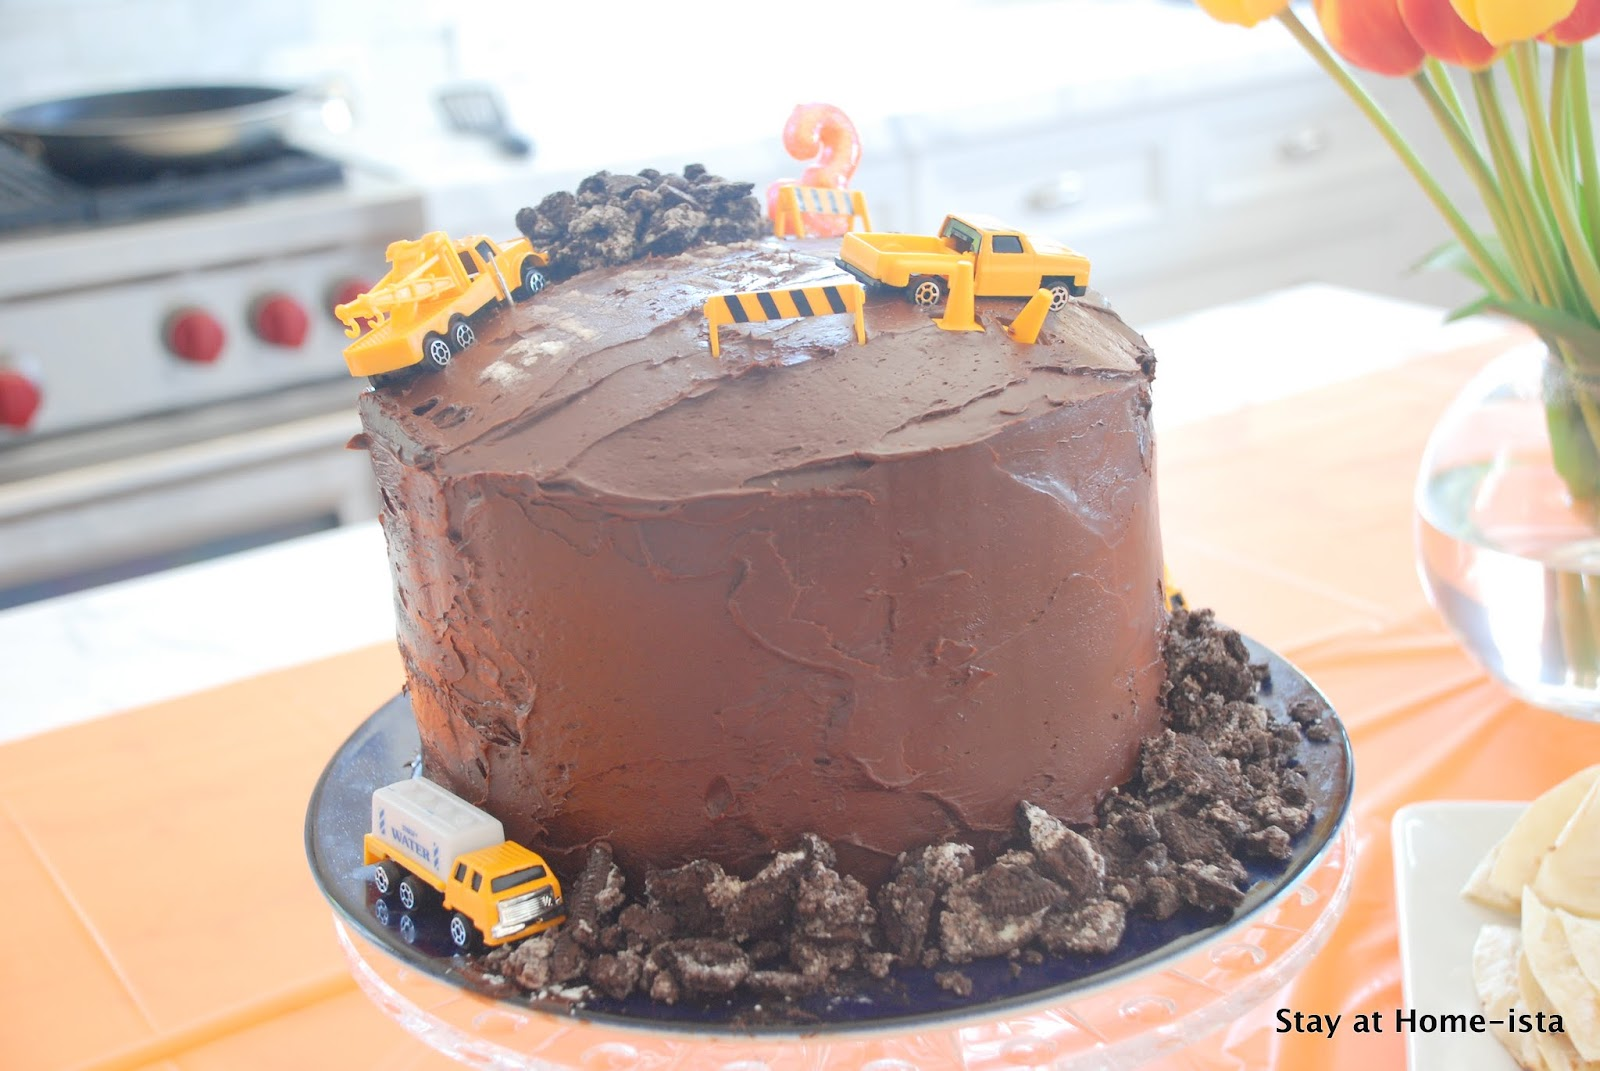 stay at home ista may 2012 construction machine birthday cake tutorial